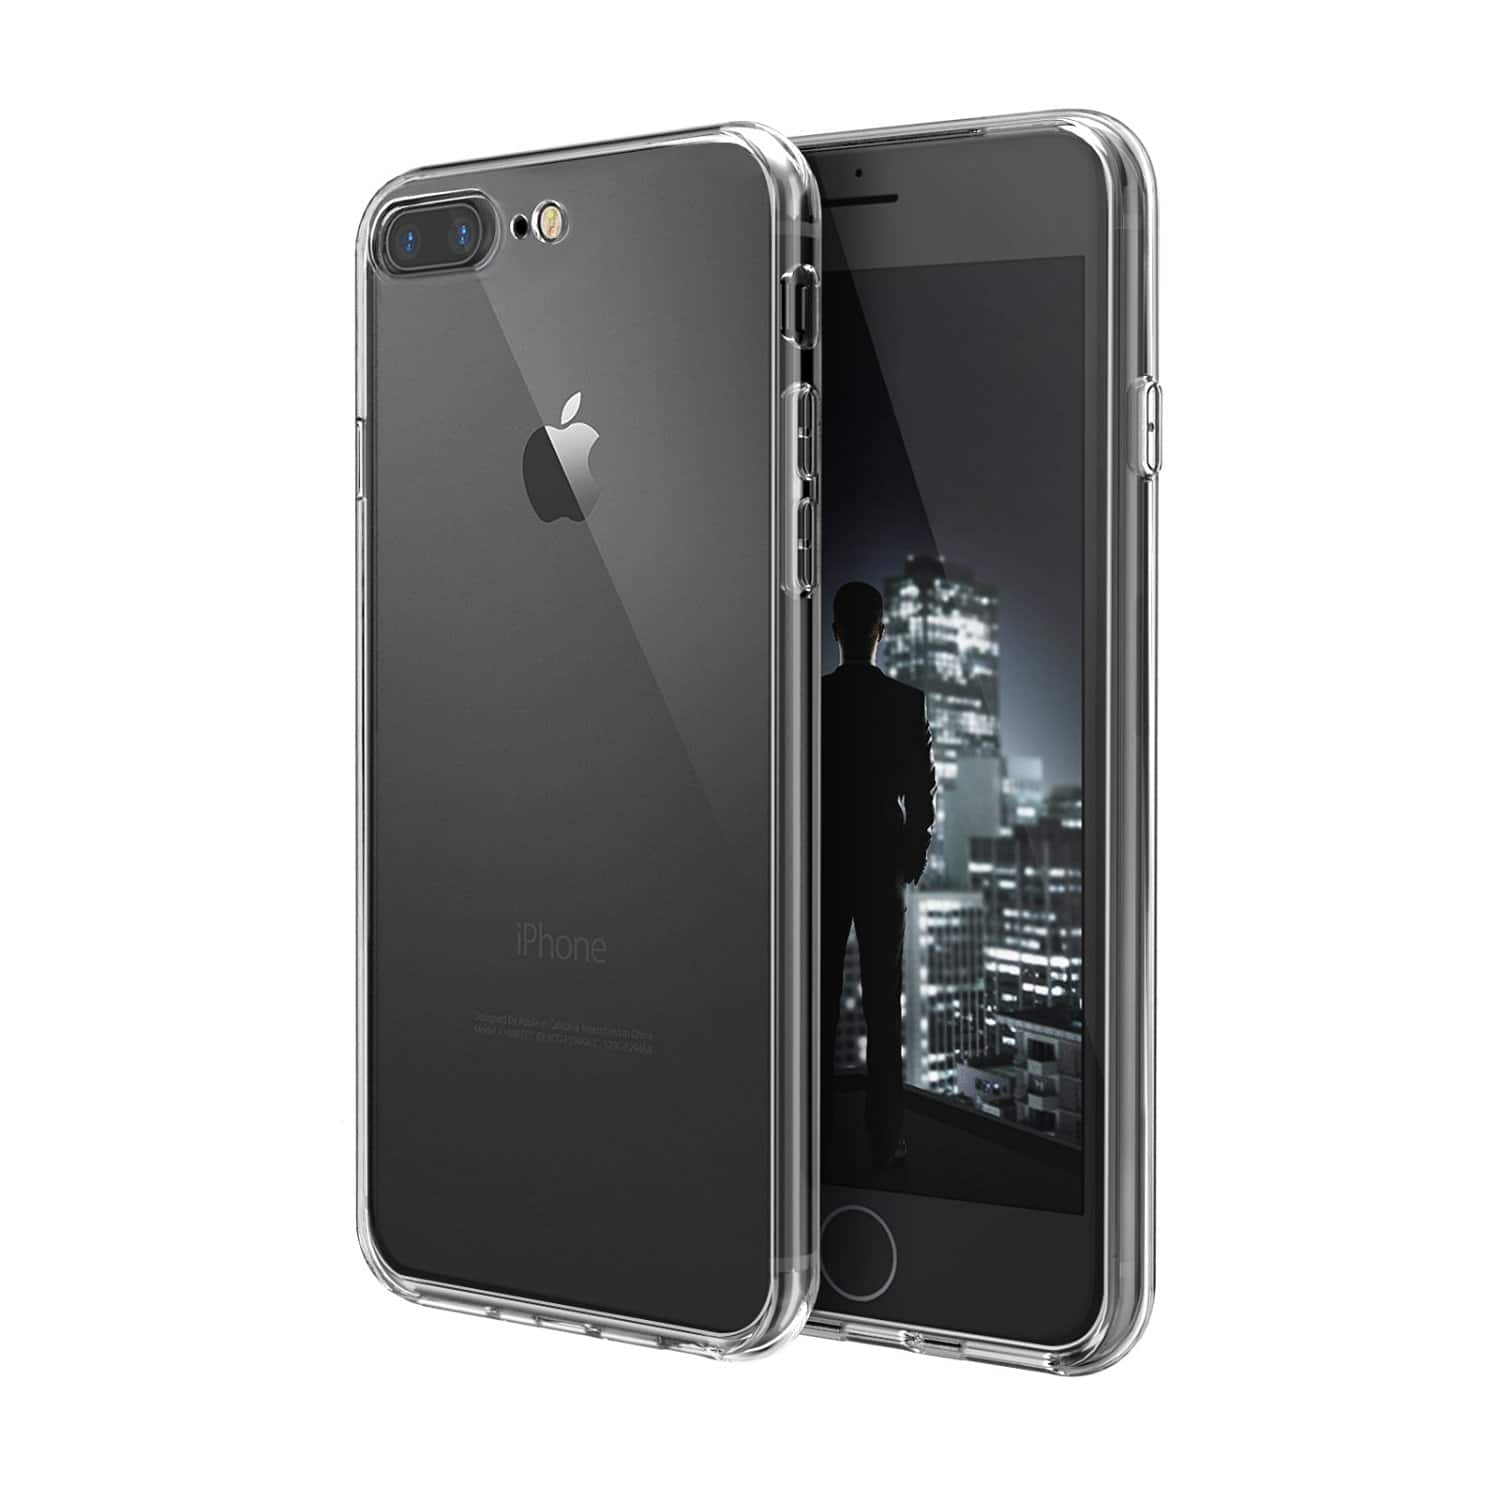 Swees iPhone 7 Plus Thin Fit Slim Clear Case  $1